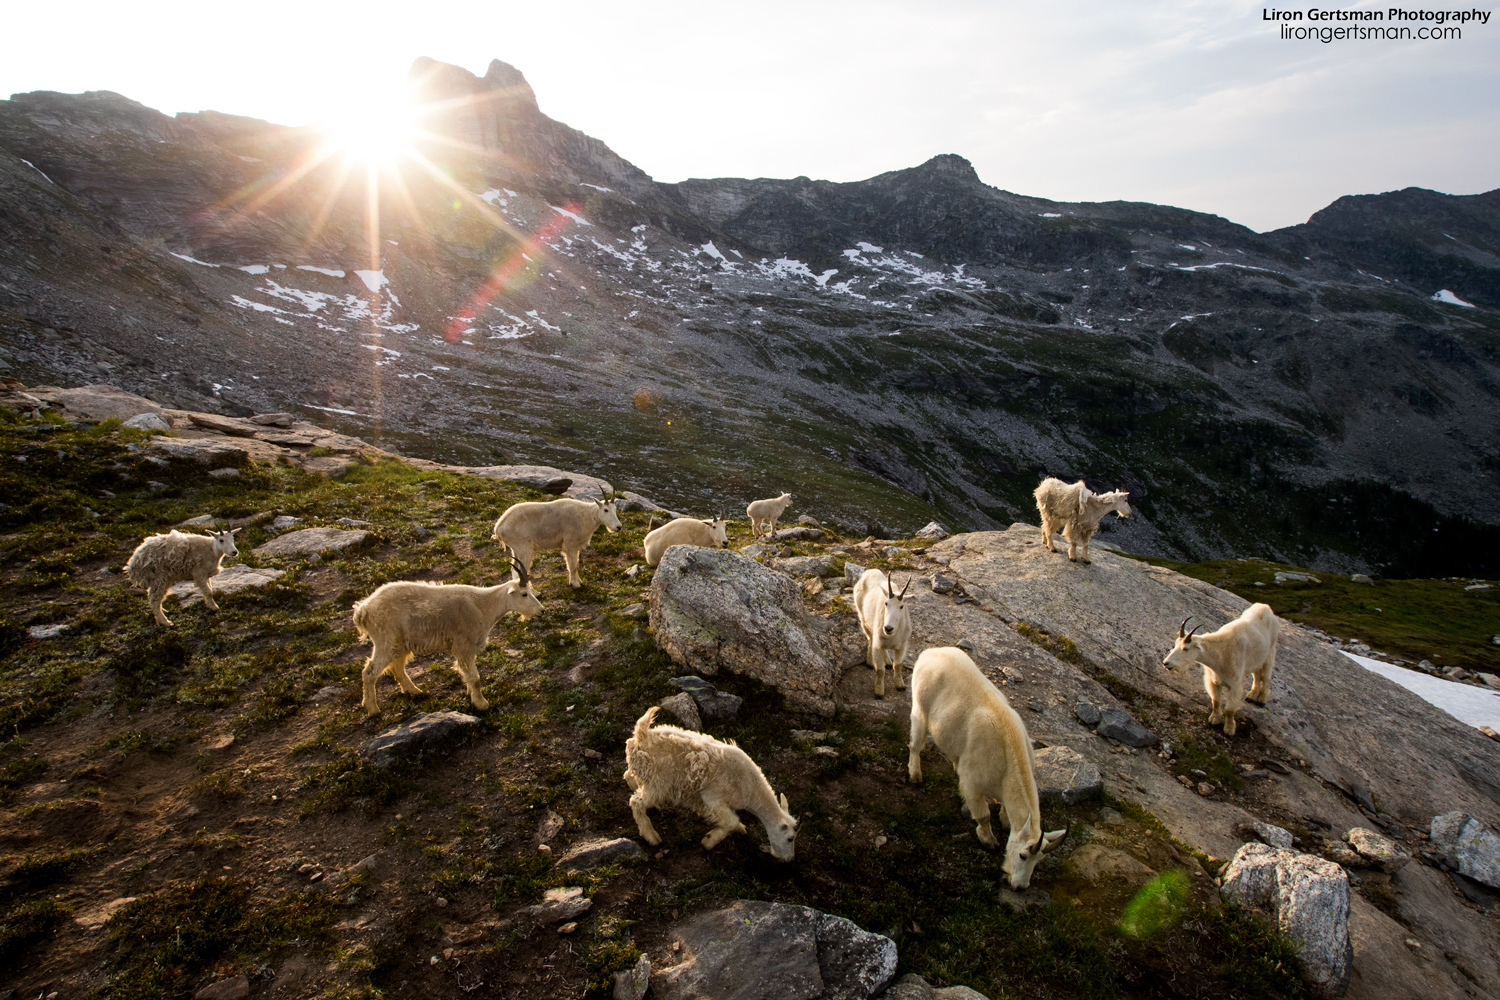 This is the typical morning scene that we would wake up to. The most goats we ever saw at once was thirteen, and this photo shows ten of them that were feeding by our campsite shortly after sunrise one morning.